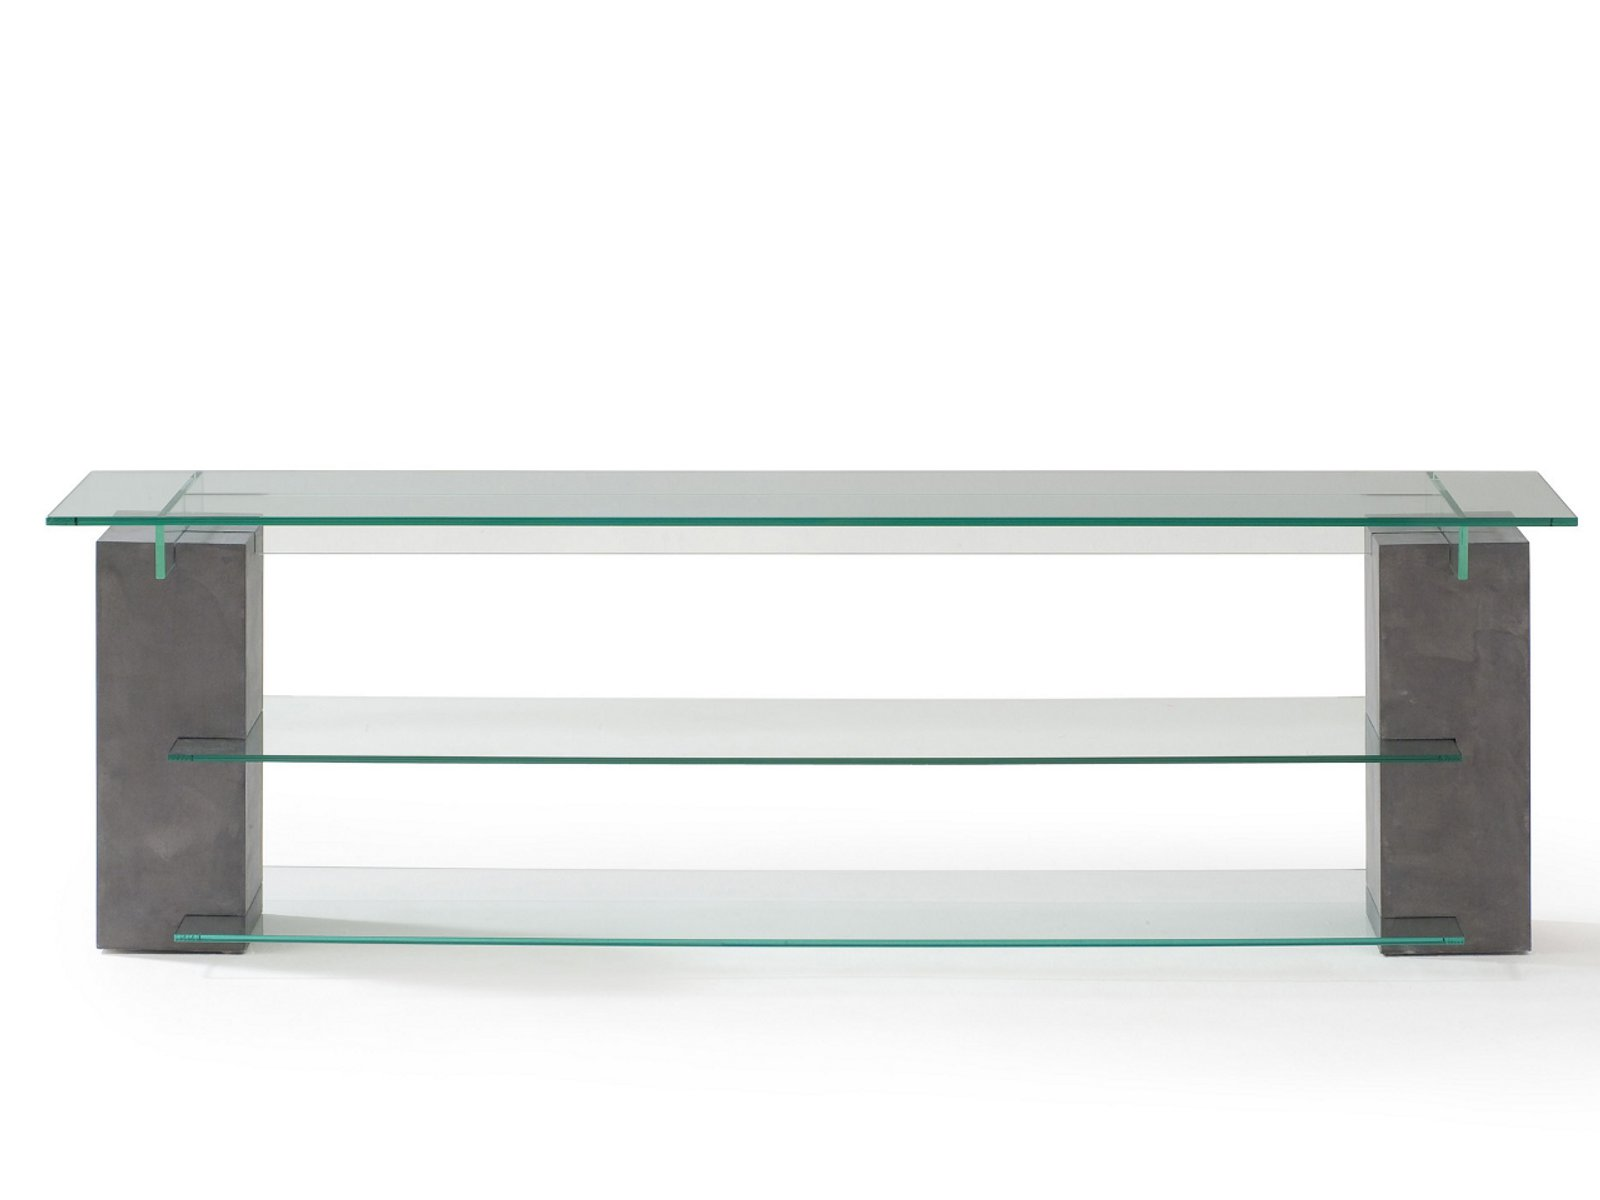 Meuble tv en verre tenere collection les contemporains by roche bobois - Roche bobois meuble tv ...